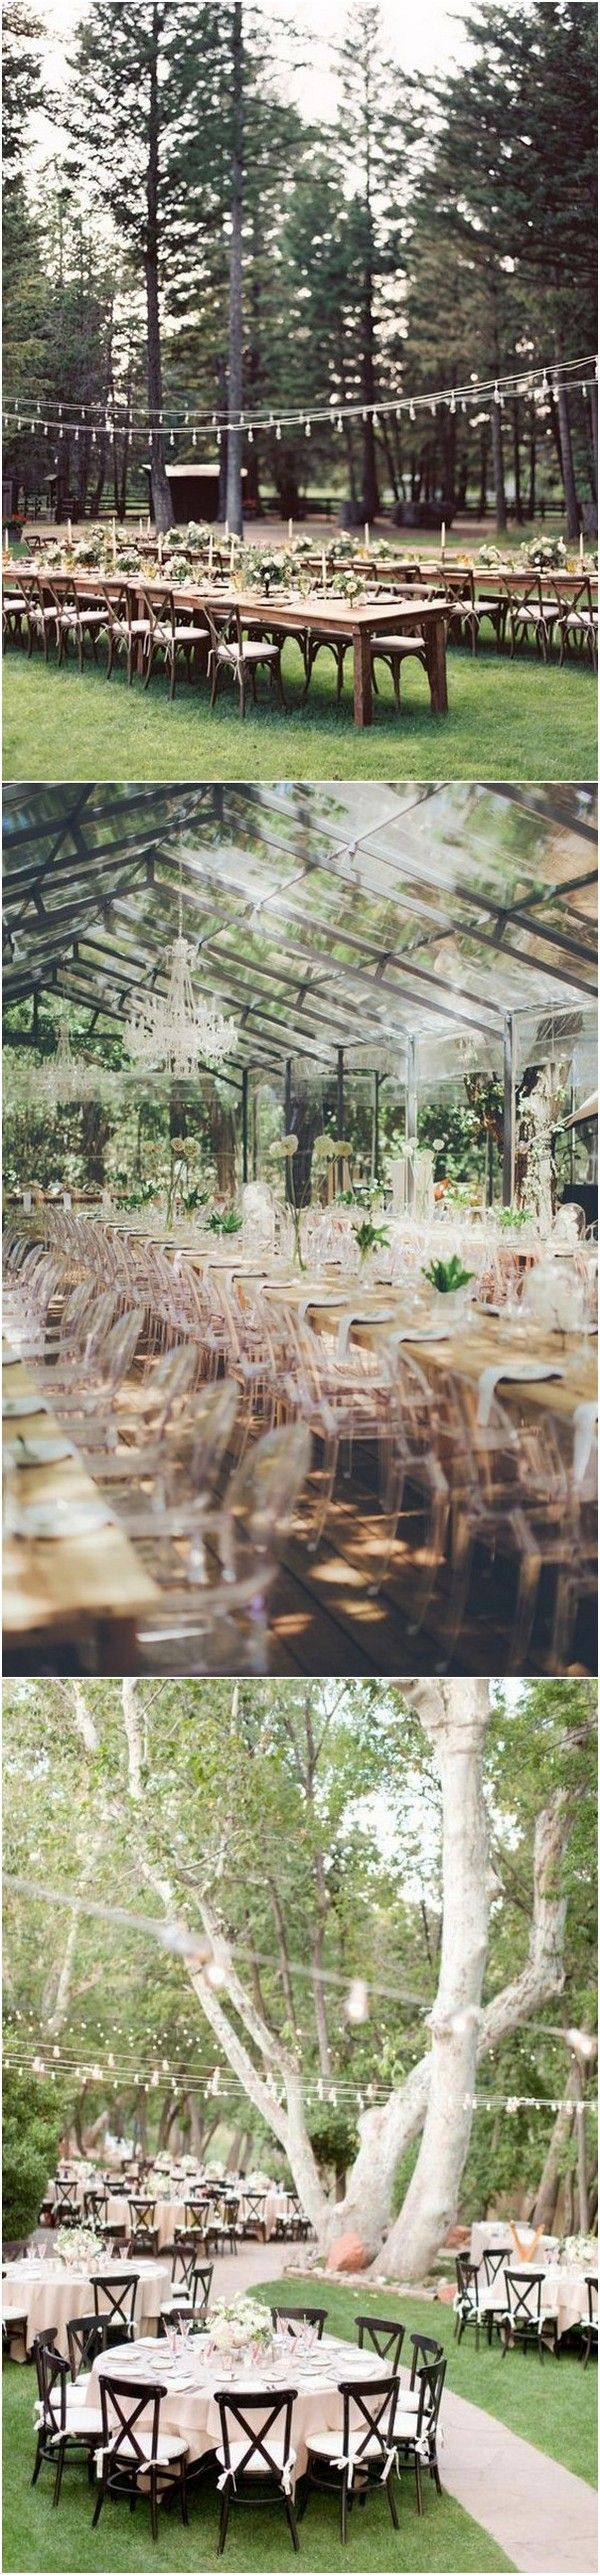 Wedding decorations outside house february 2019  Whimsical Woodsy Forest Wedding Reception Ideas for  Trends